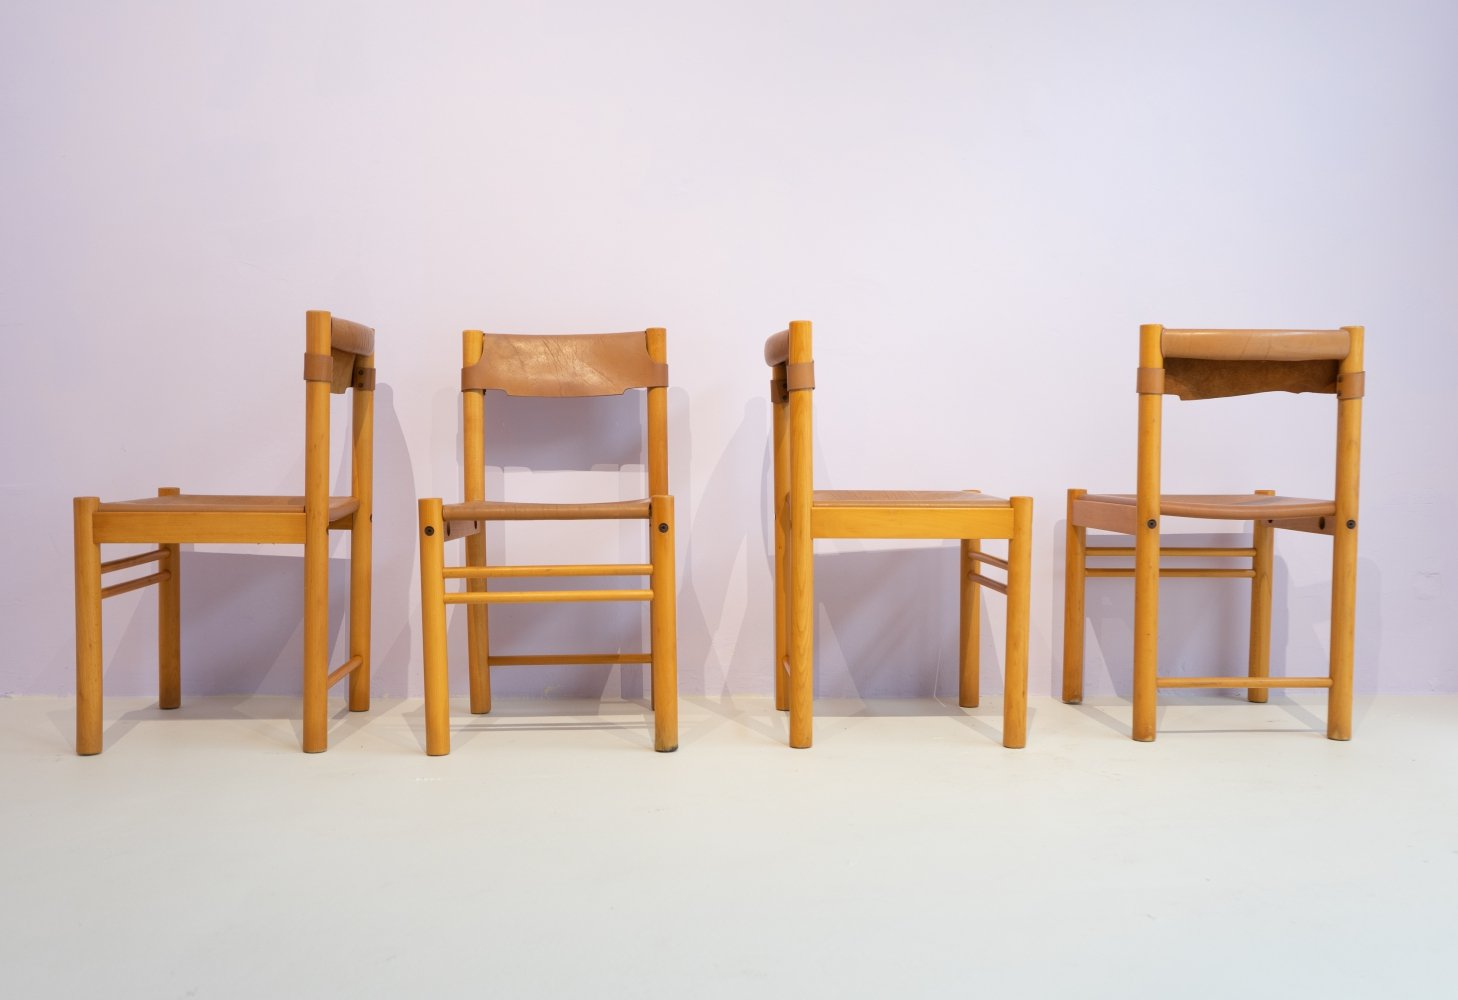 Set of 4 Minimalistic Ipso Facto Dining Chairs by Ibisco Sedie, 1980s